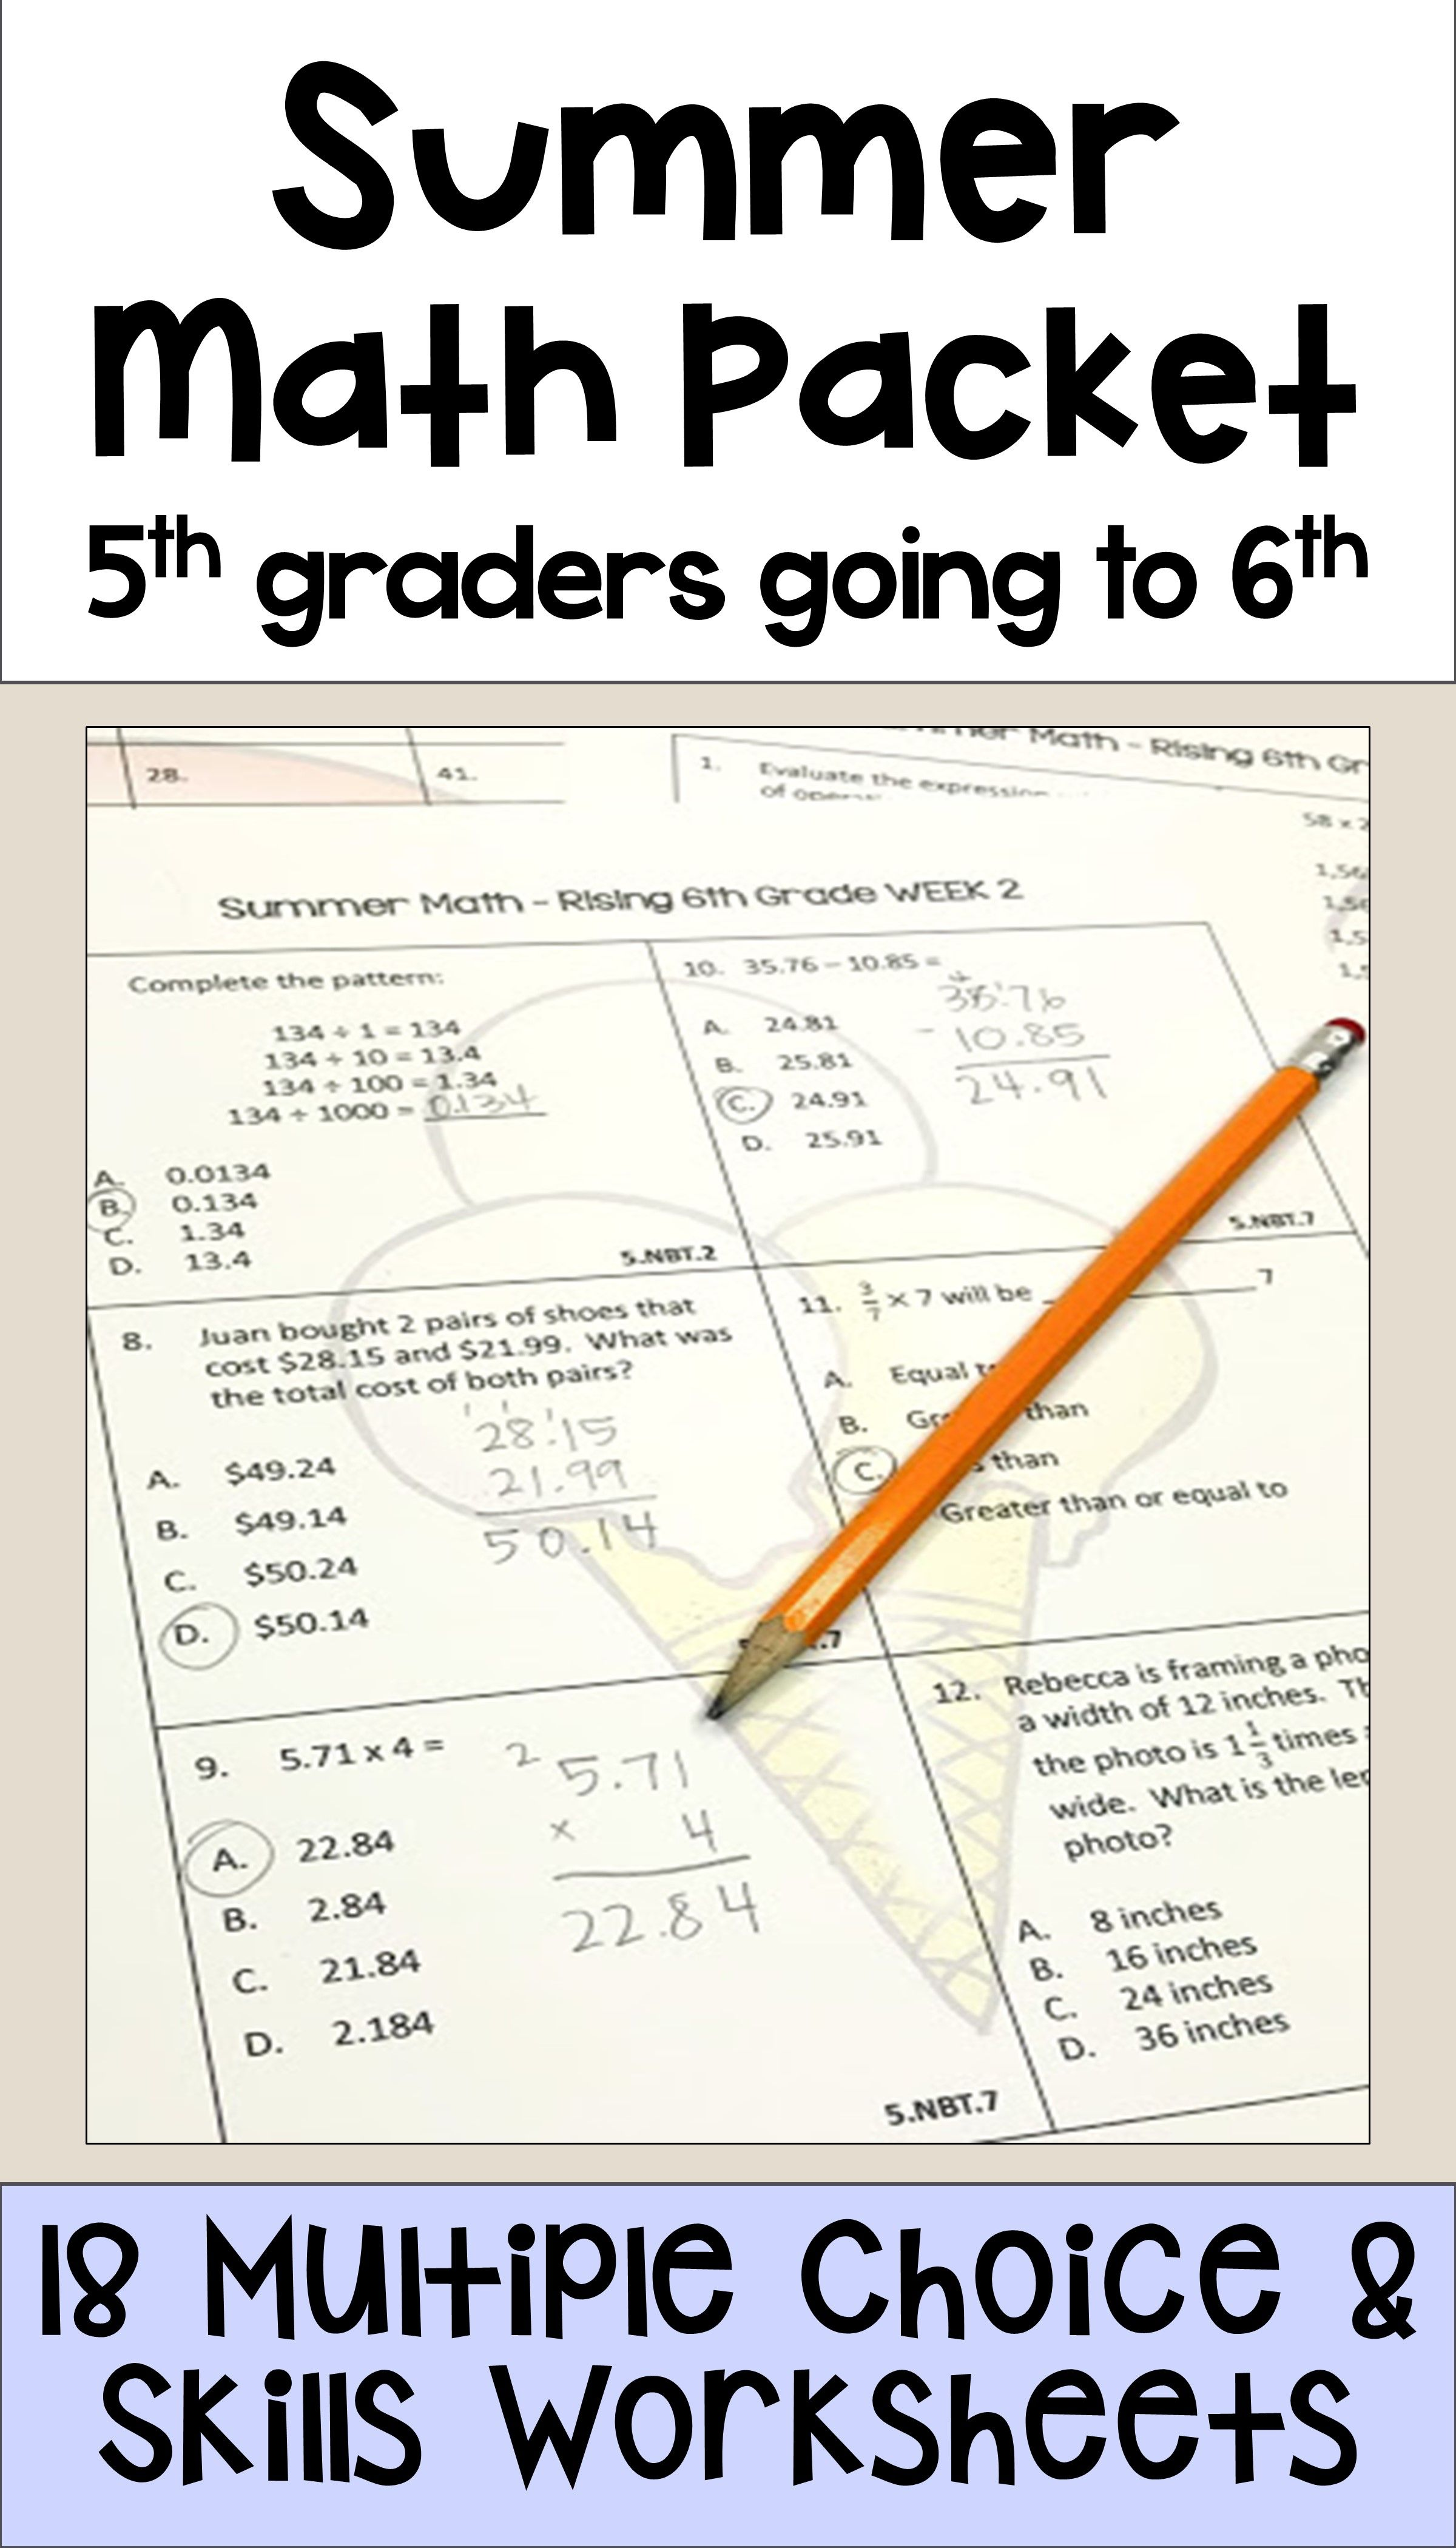 Summer Math Packet For Rising 6th Graders Review Of 5th Grade